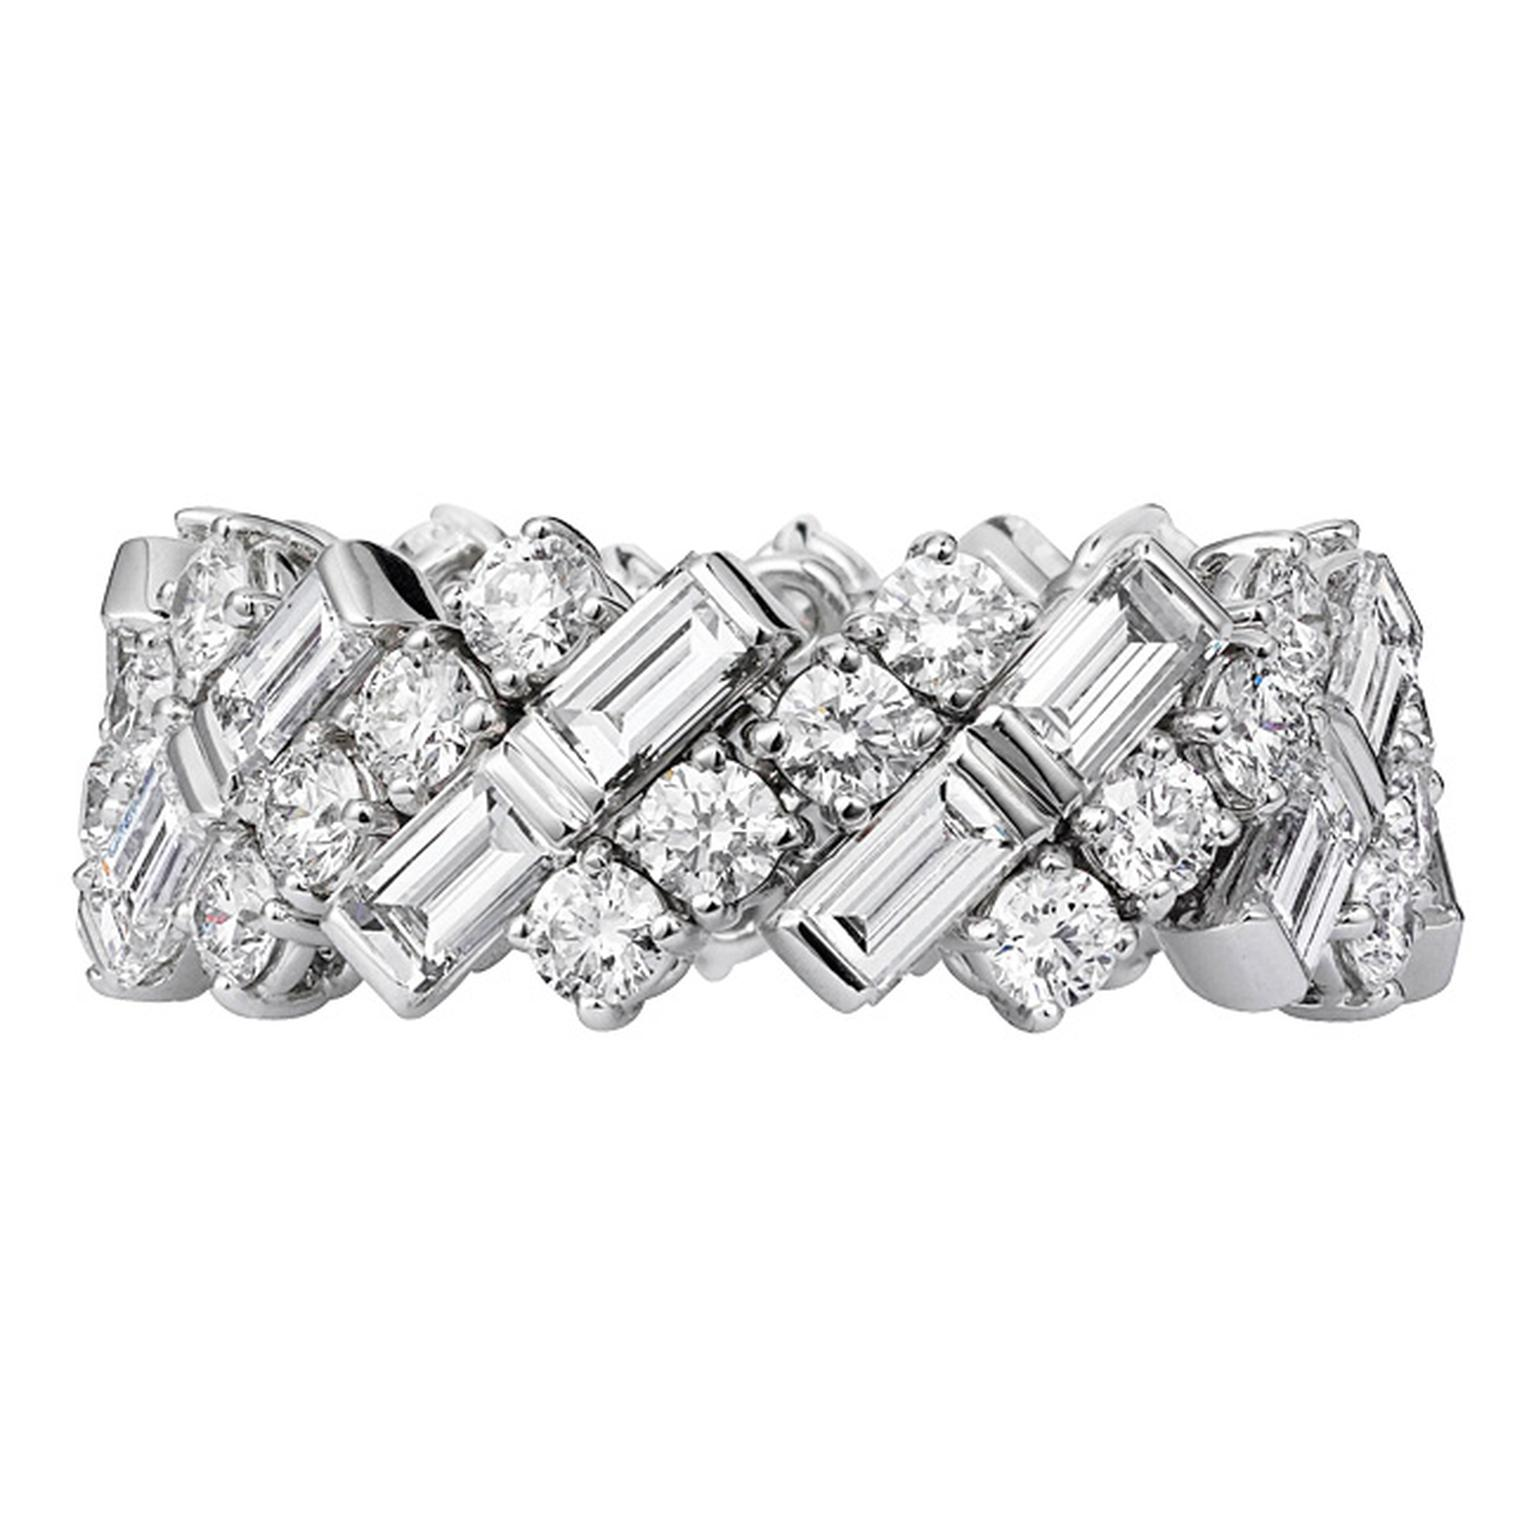 Cartier wedding ring in white gold and diamonds_20140205_Main